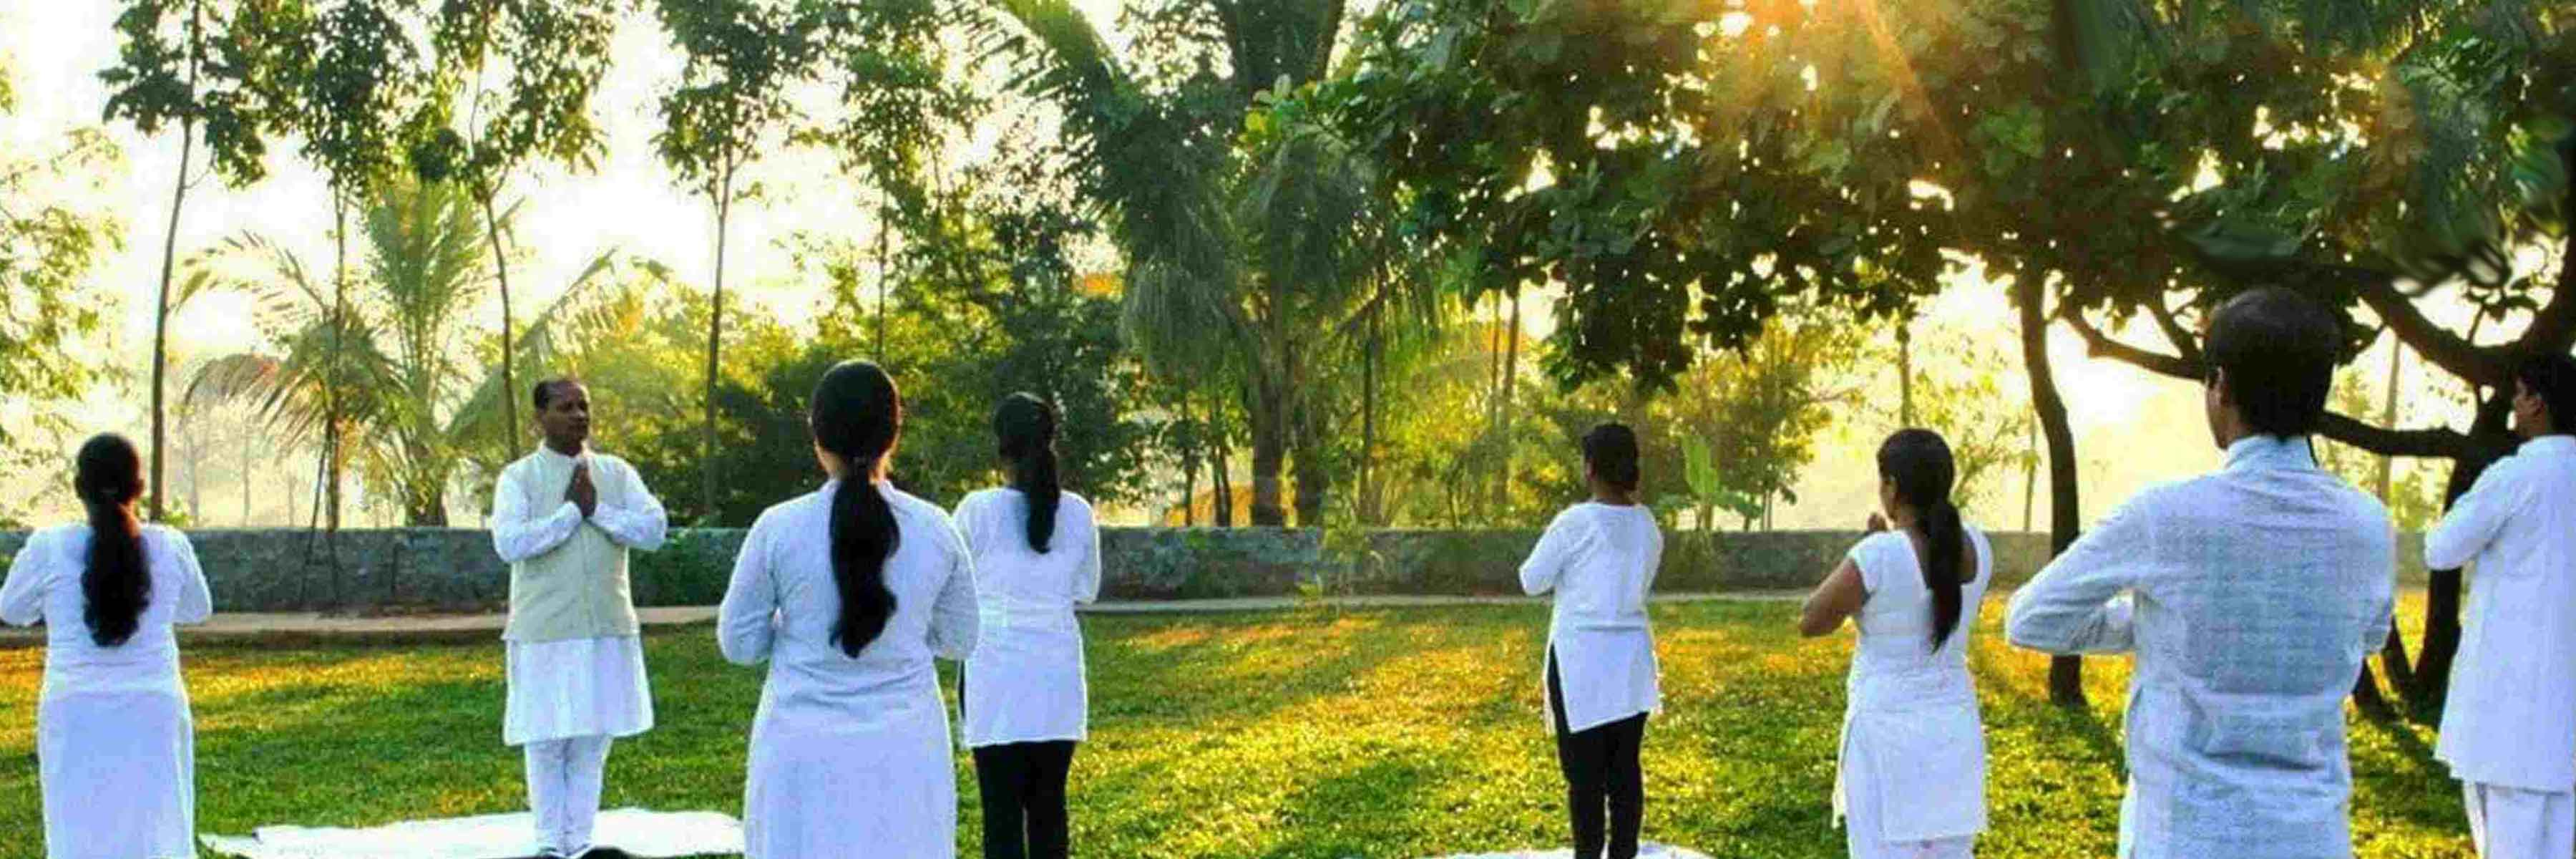 Agni-Ayurvedic Village Residential Wellness